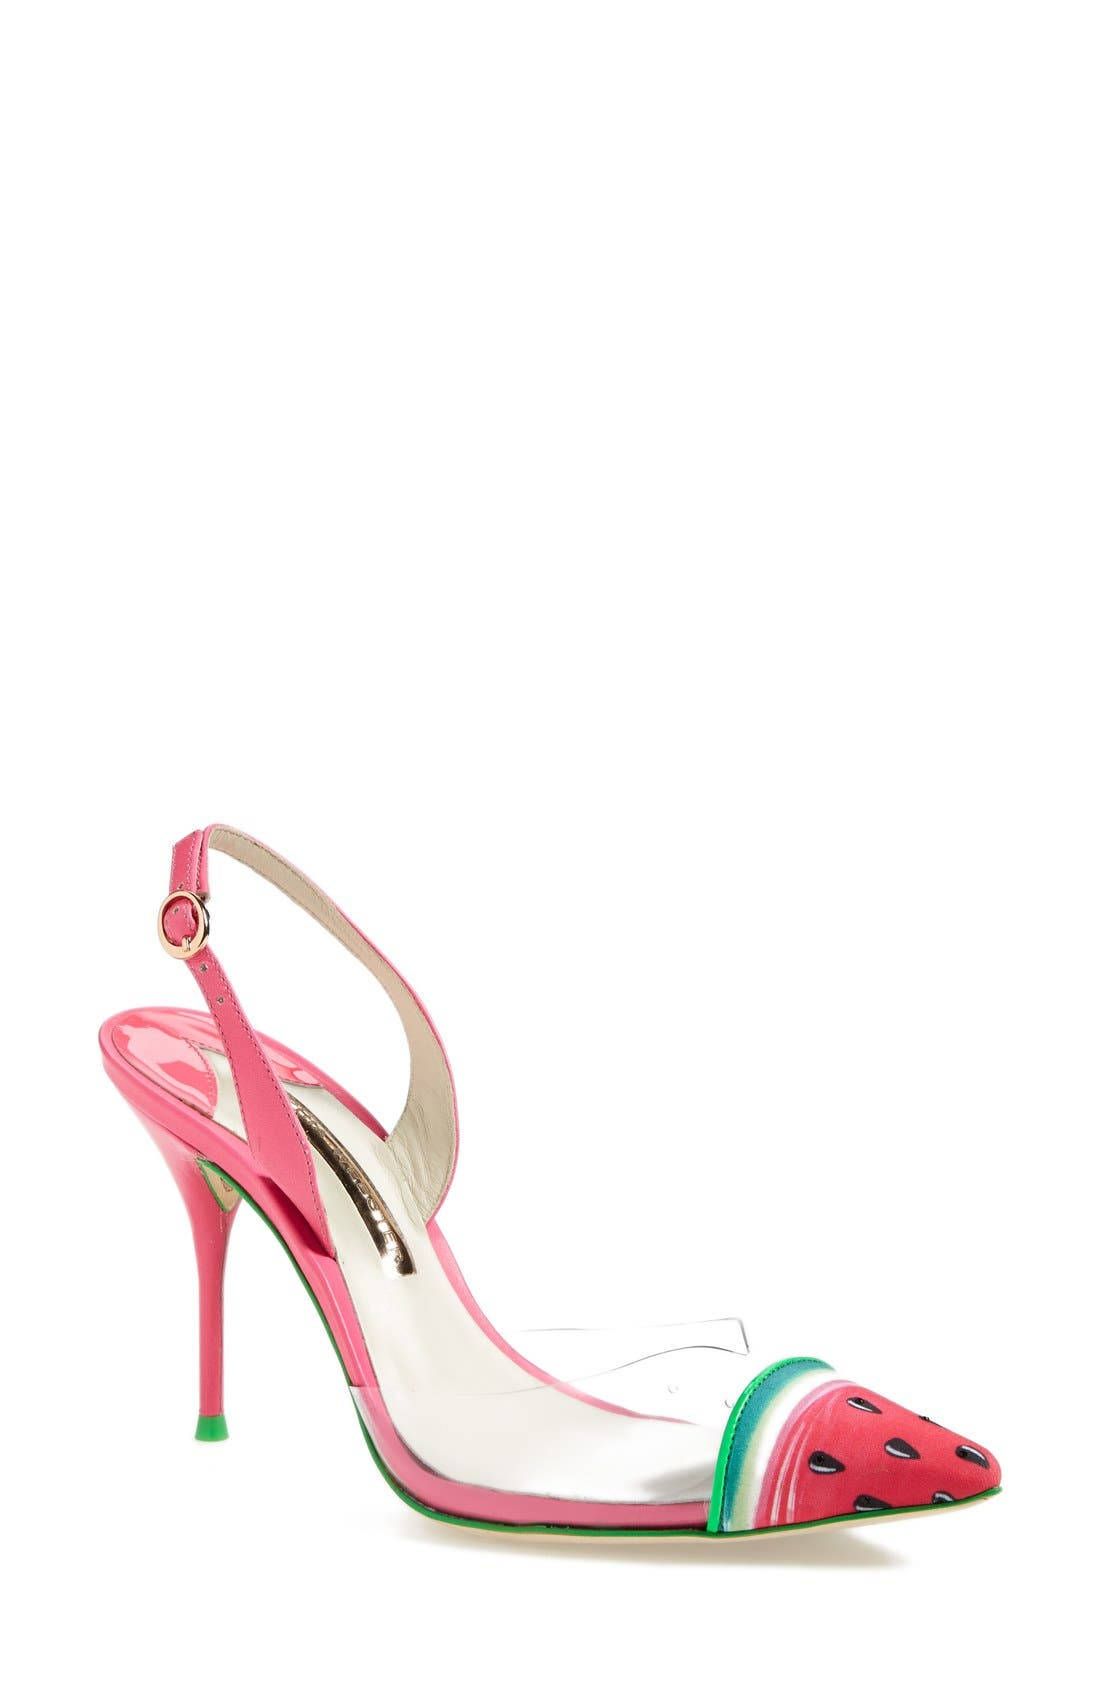 Alternate Image 1 Selected - Sophia Webster 'Daria' Pointy Toe Pump (Women)